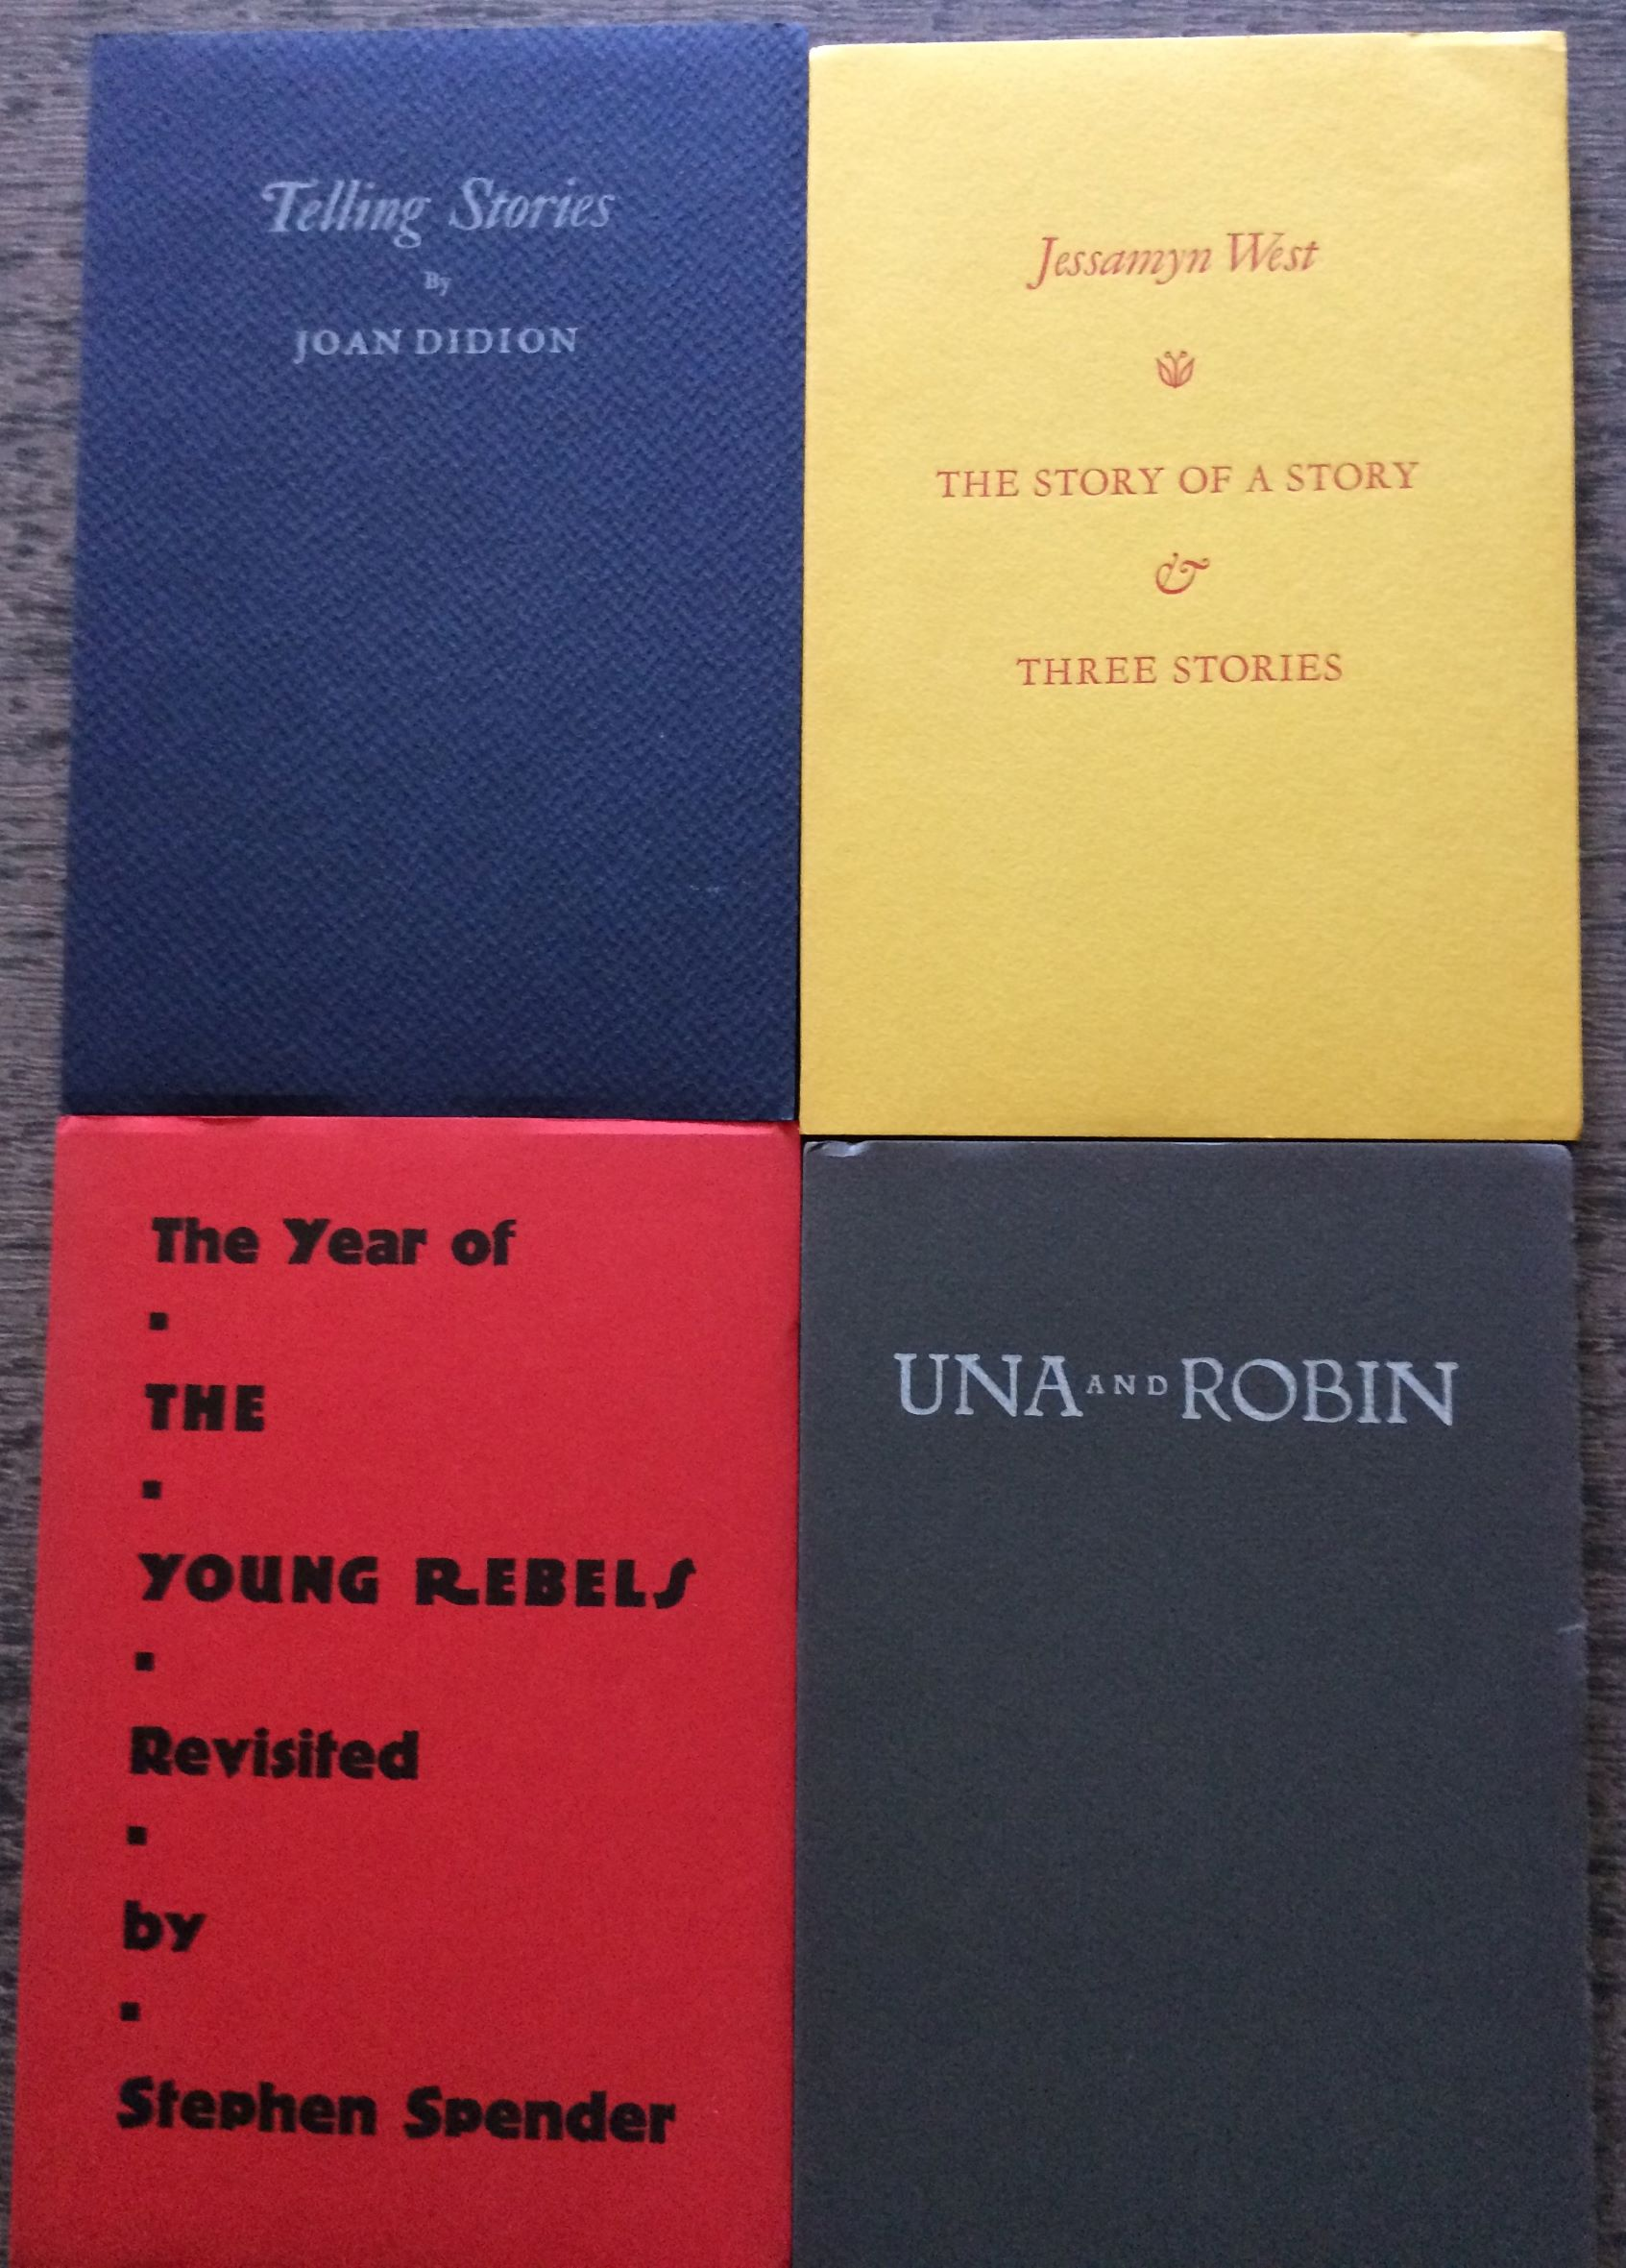 Image for [4 literary titles from the Keepsake Series] Una and Robin; Telling Stories; Story of a Story & Three Stories; The Year of the Young Rebels.